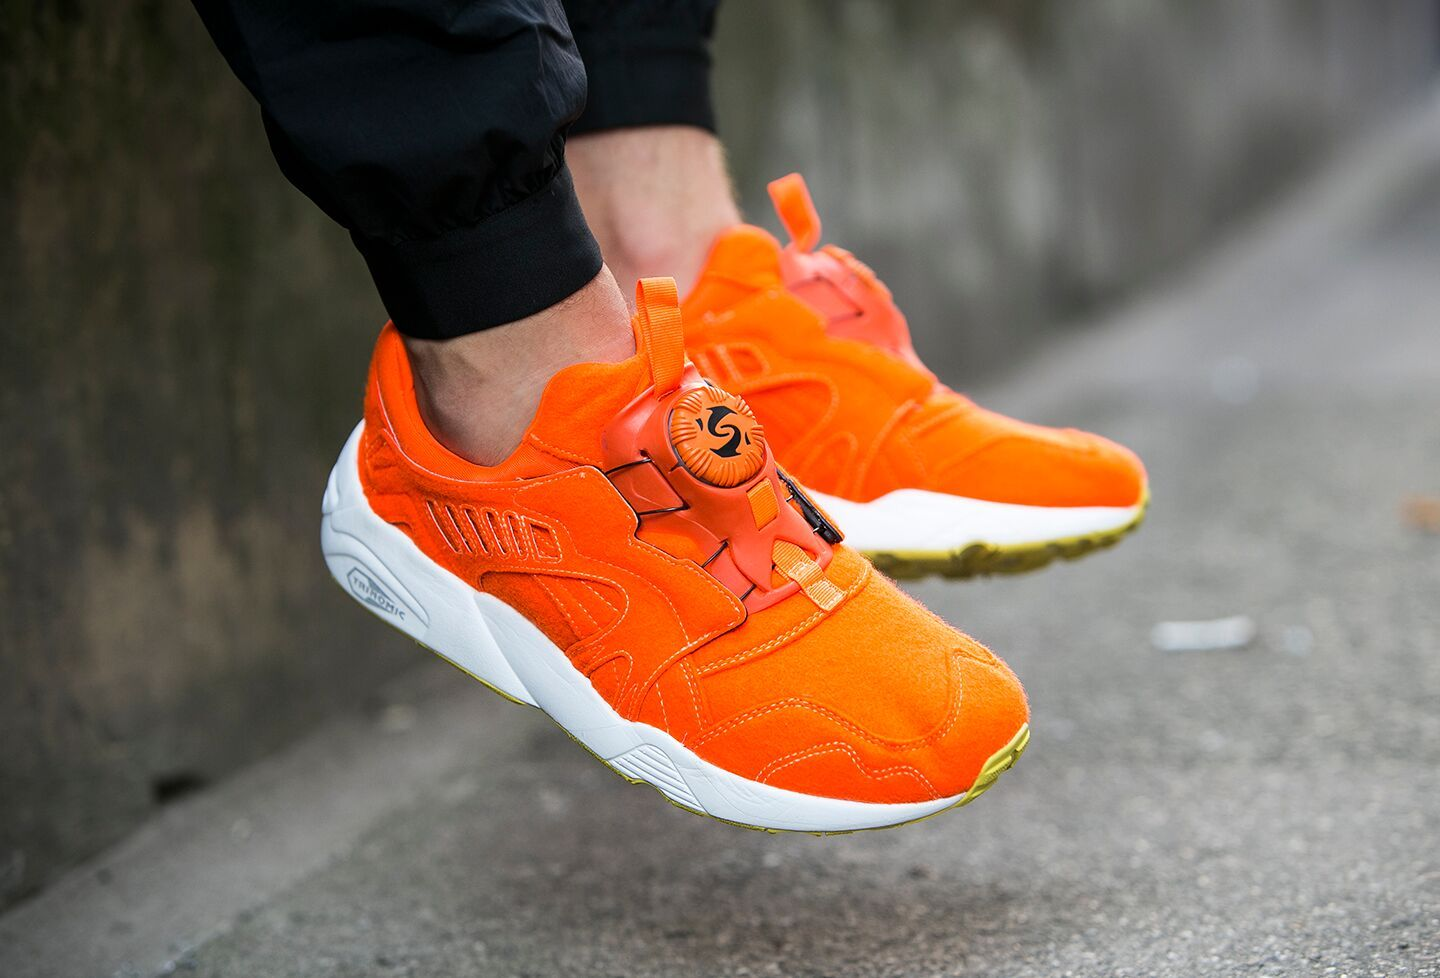 Puma 01 Trinomic Disc Bright Wool Orange Ref/359361 01 Puma 81dbe2